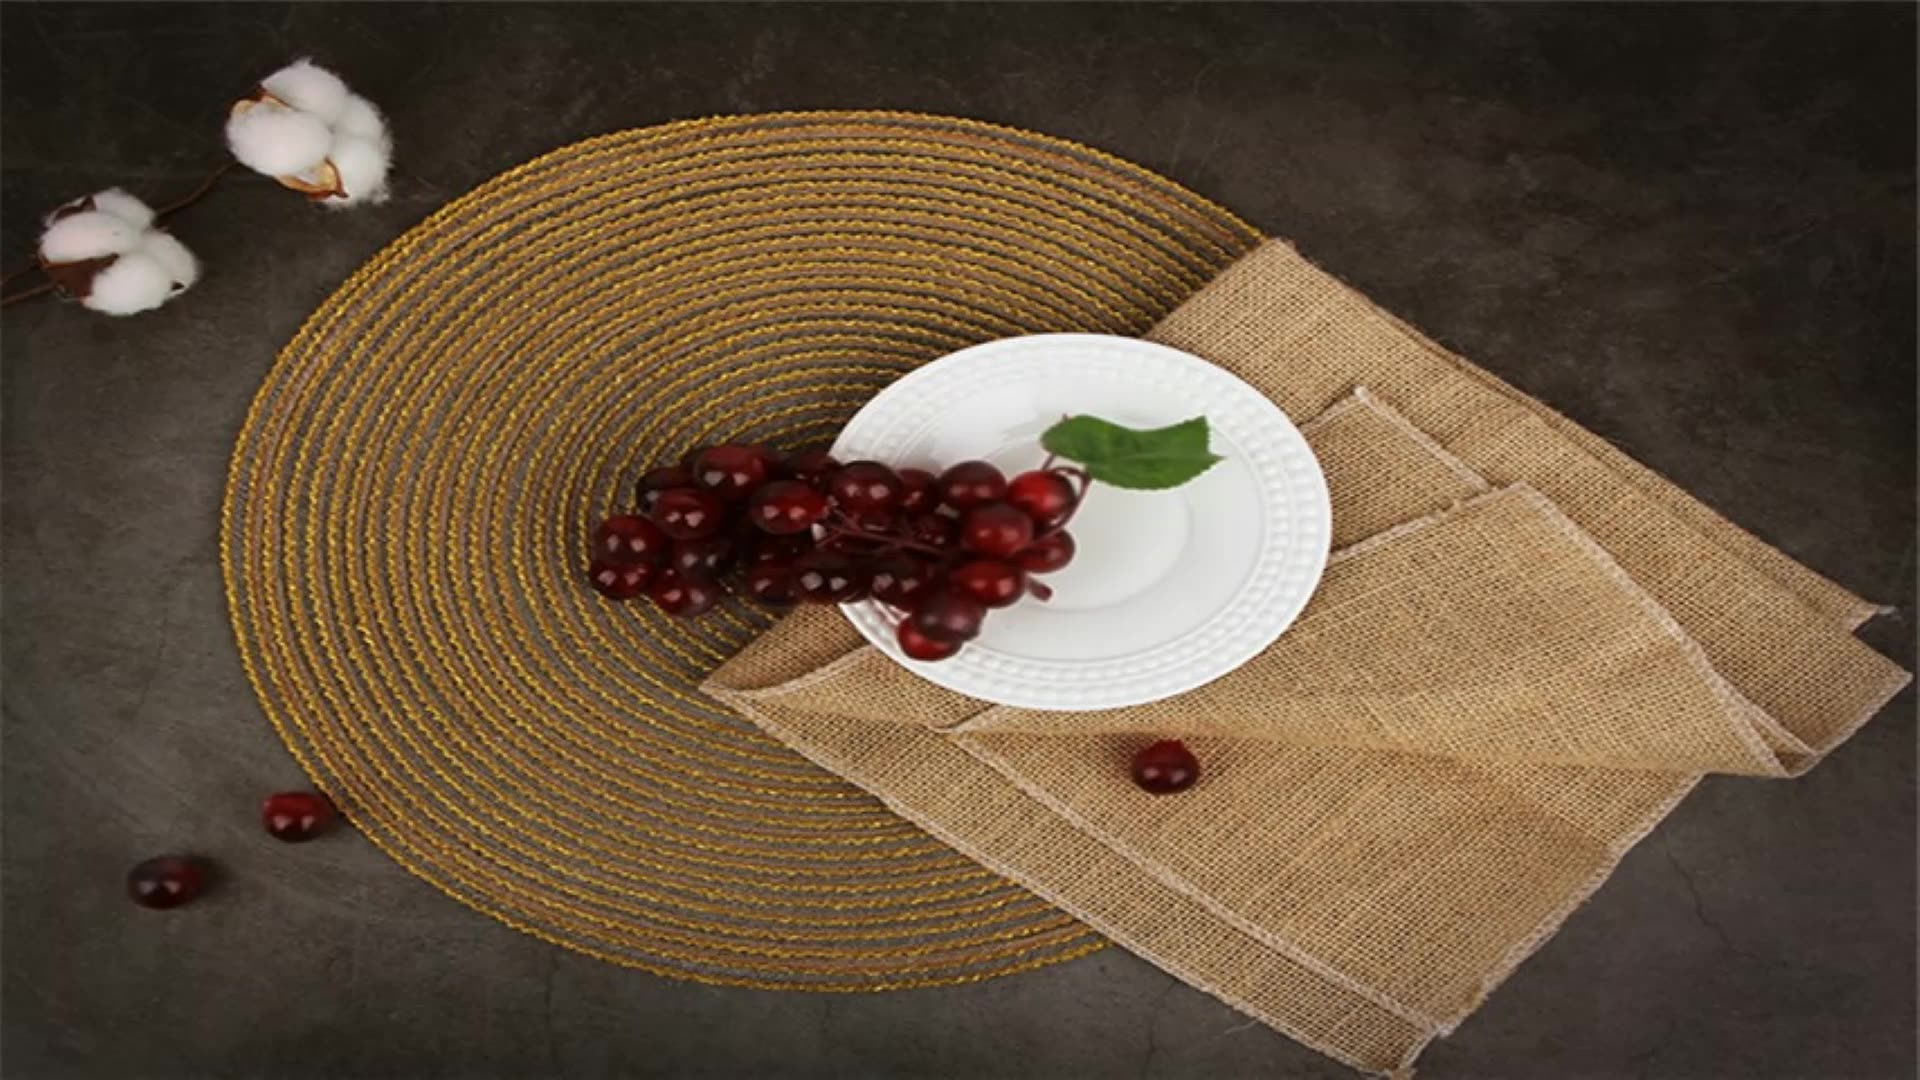 crossweave woven red placemat stain resistant pink placemat kitchen table mats